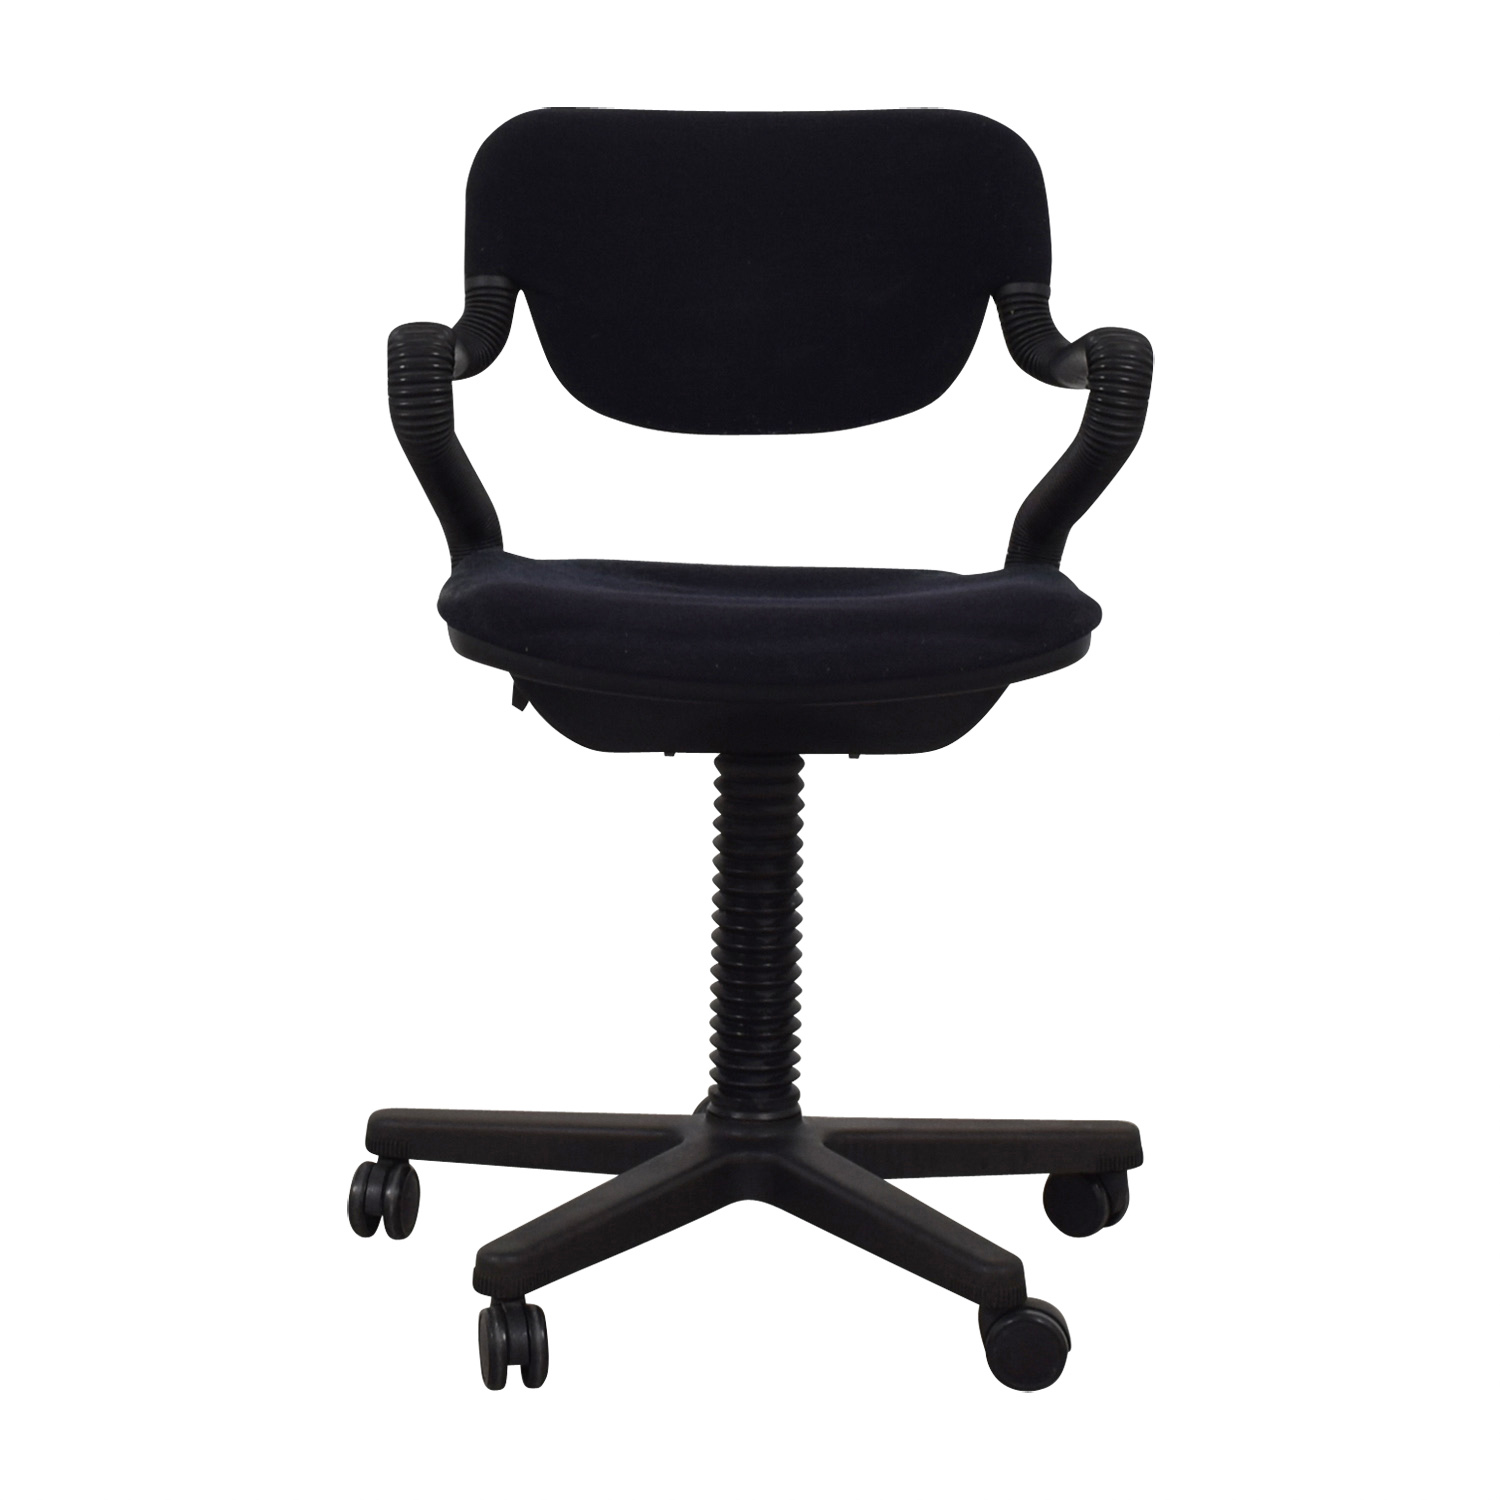 buy  Vintage Black Desk Arm Chair online